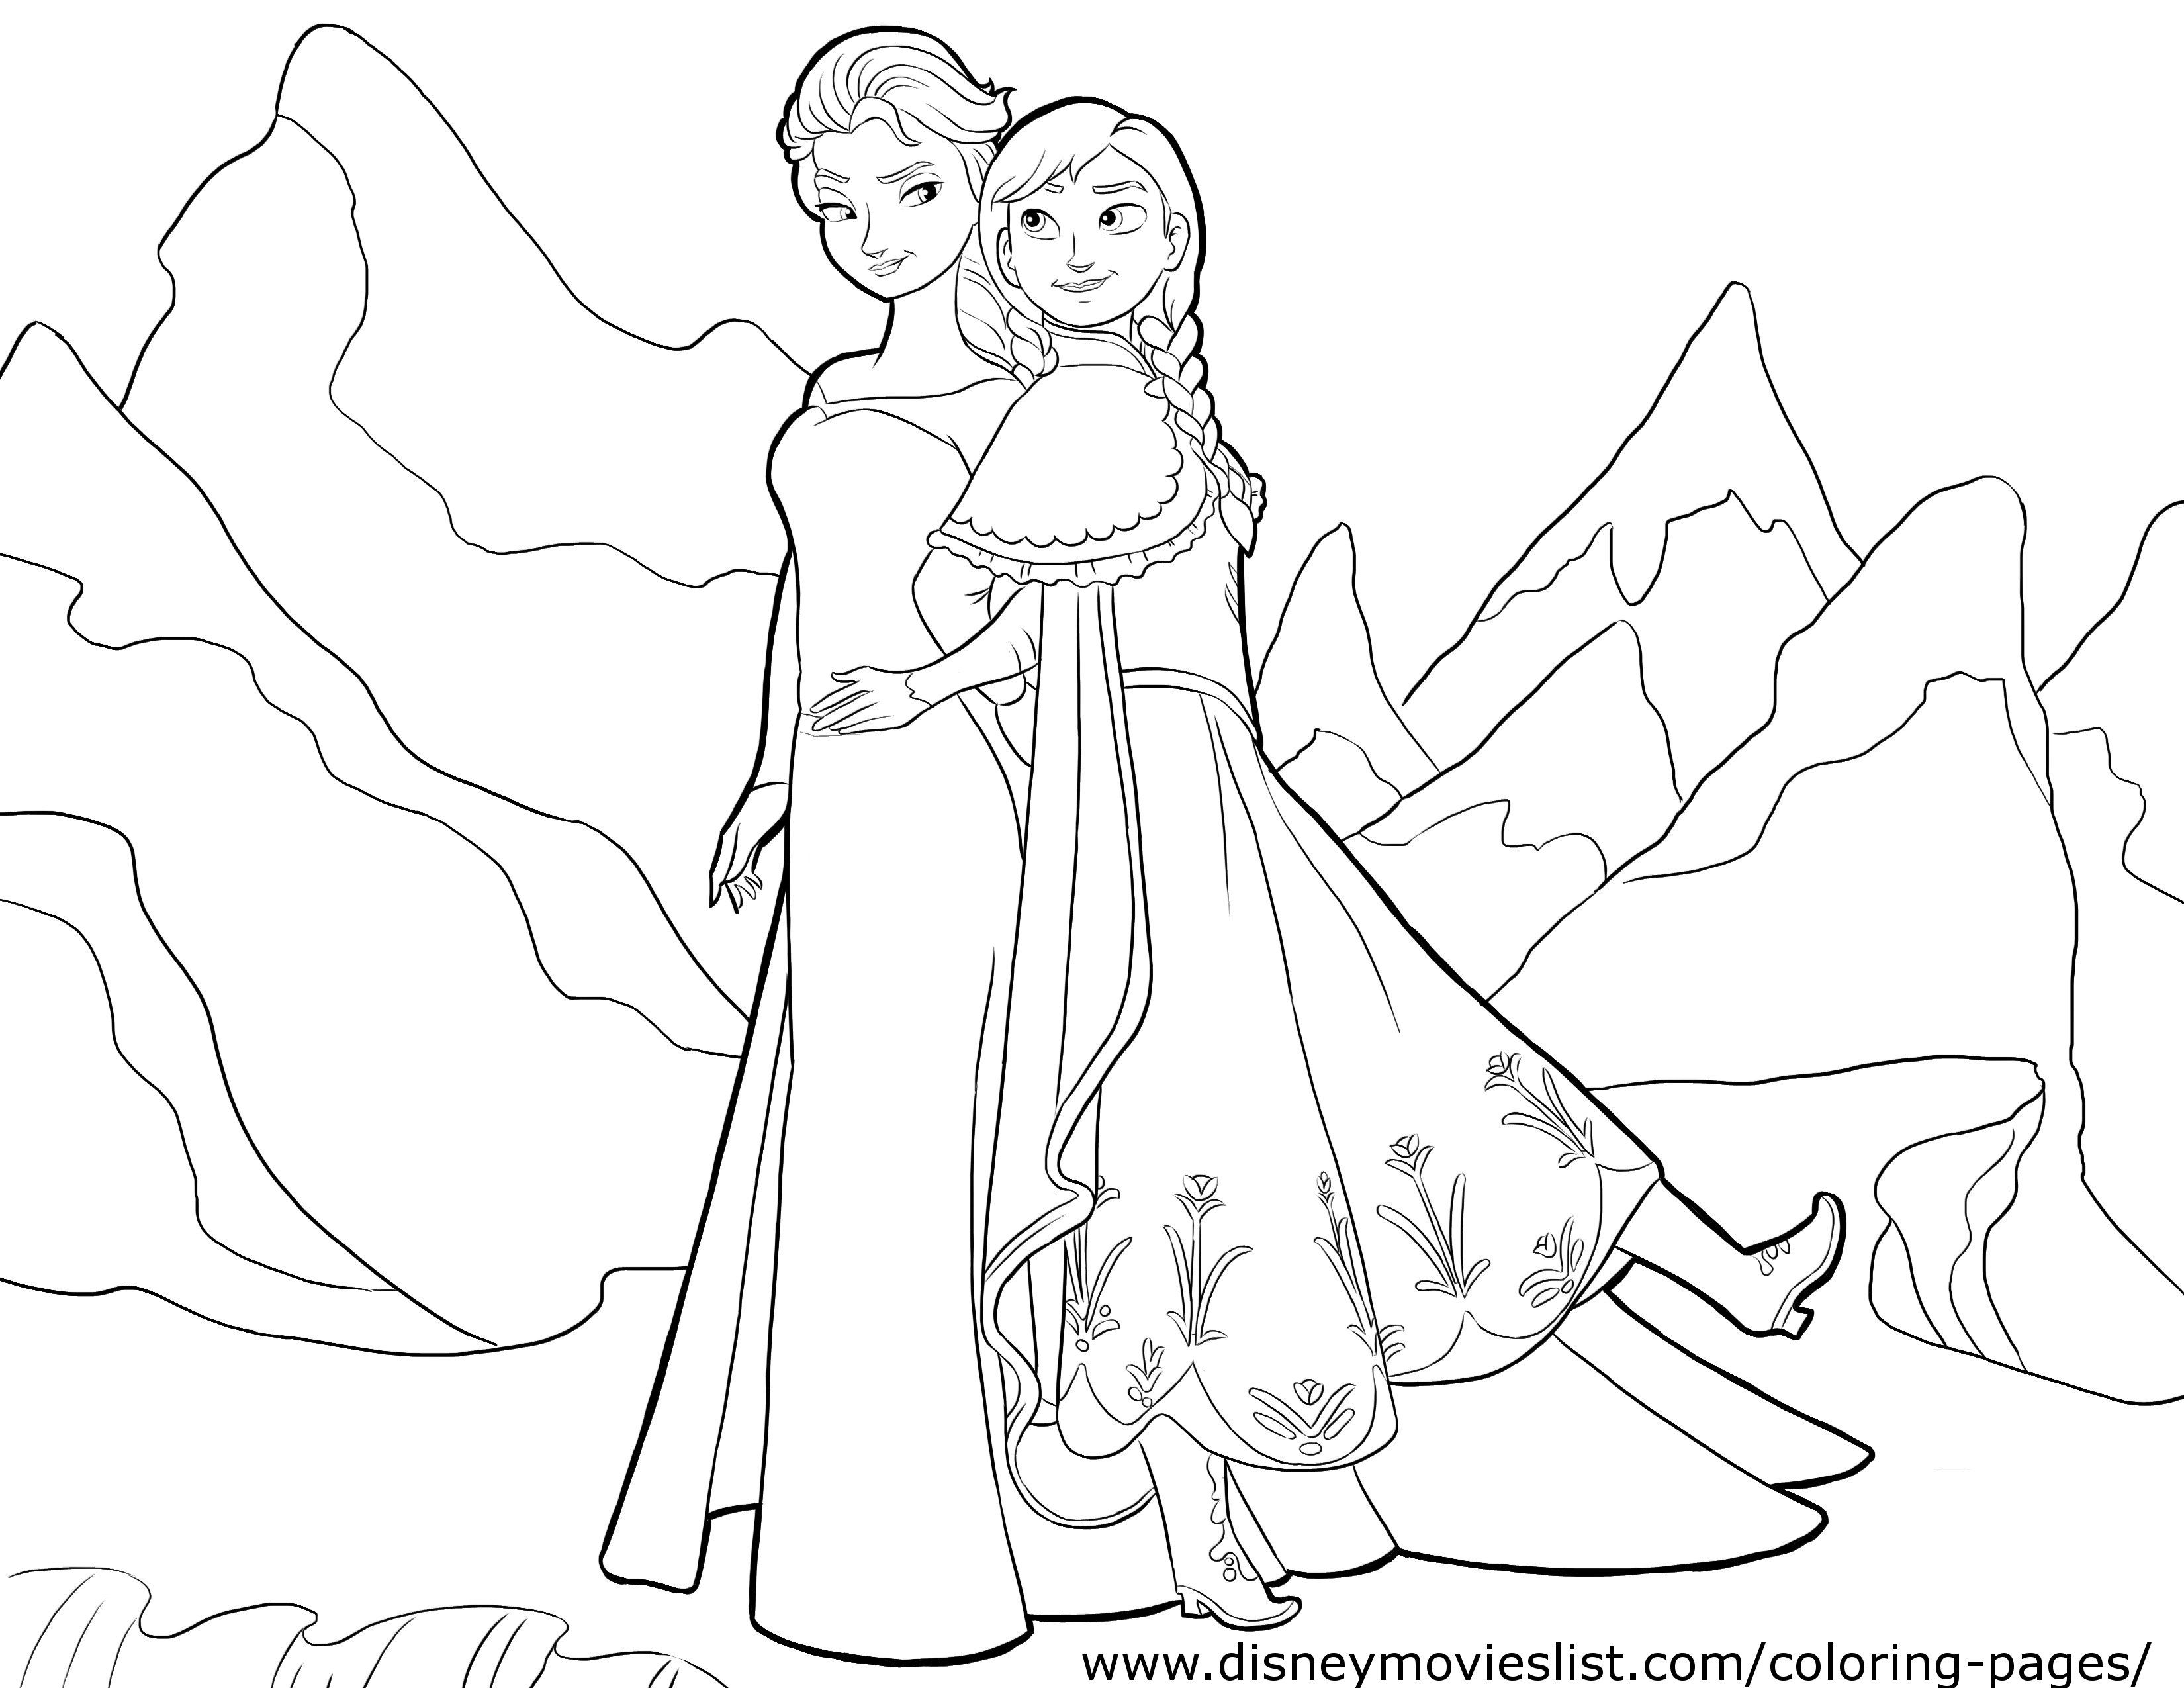 Free Elsa Frozen Coloring Pages at GetDrawings.com | Free ...